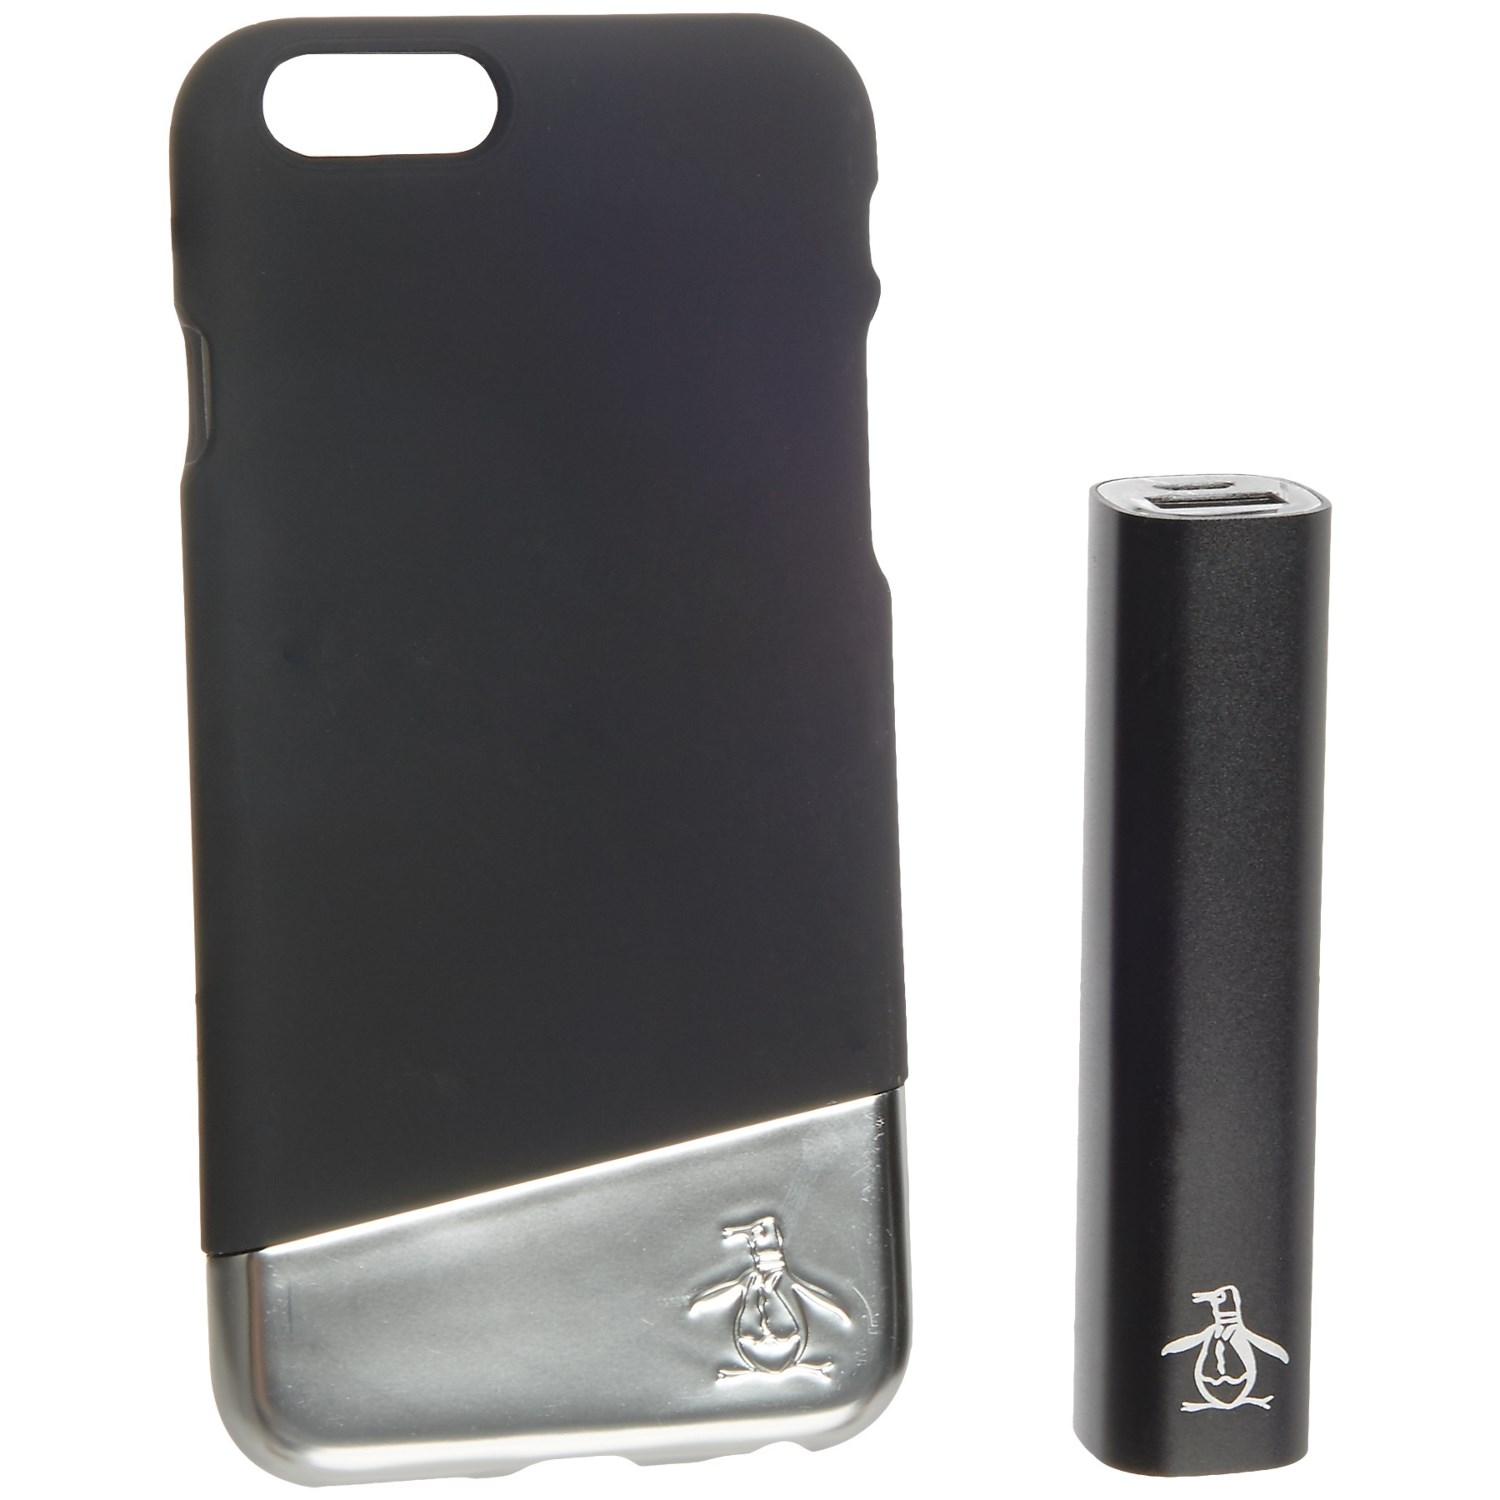 iphone power bank. click to expand iphone power bank